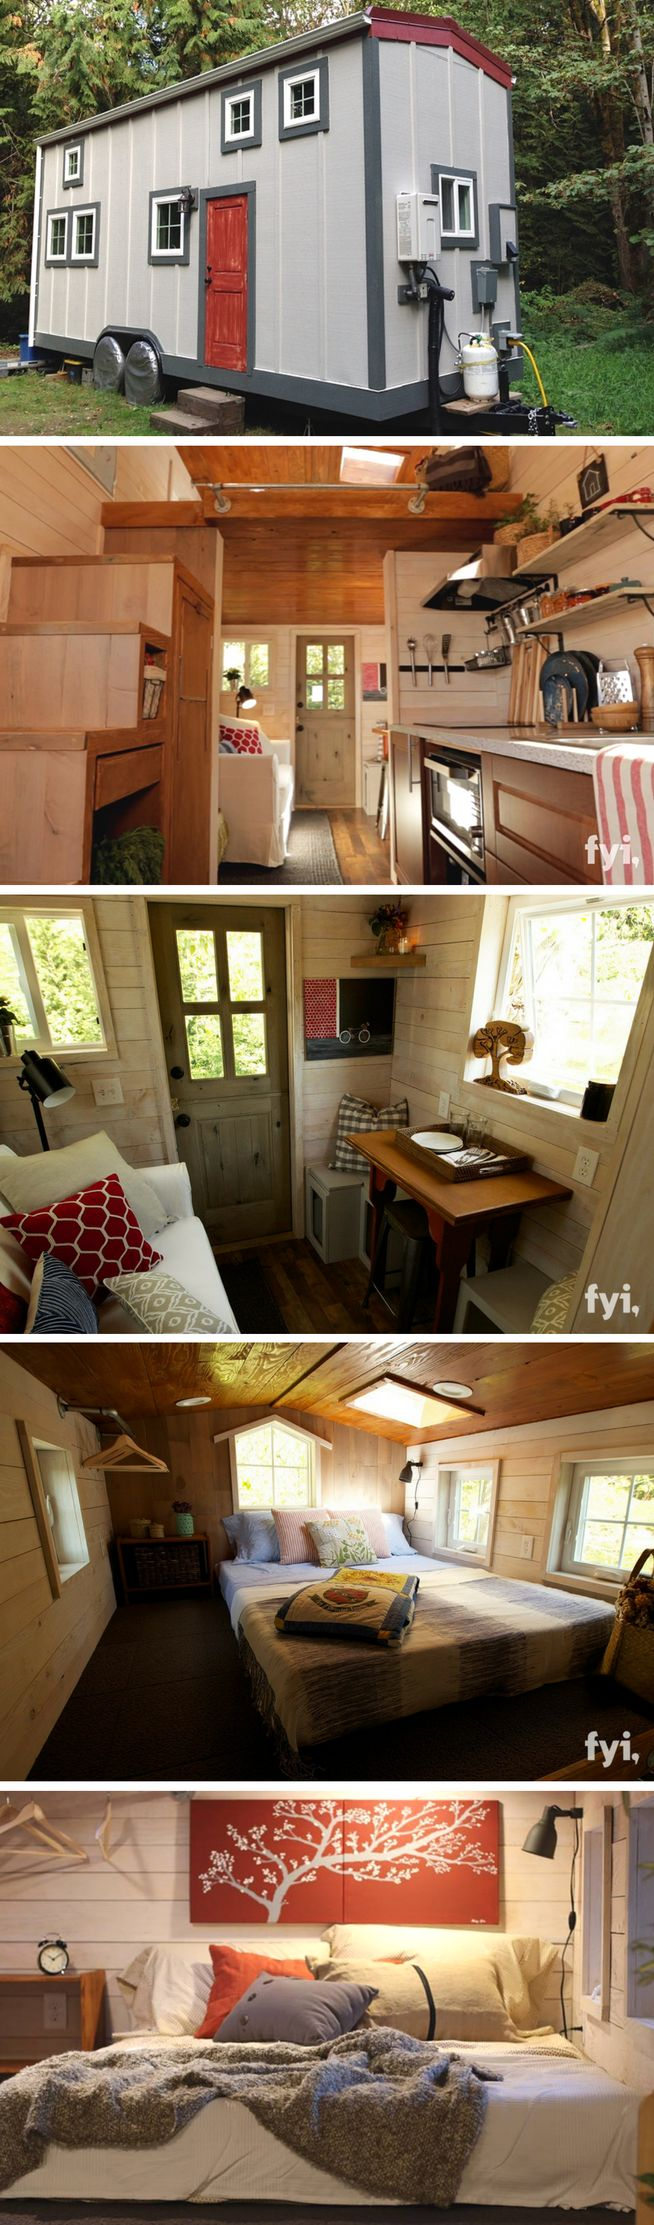 The Barn Chic Tiny House Featured On Nation